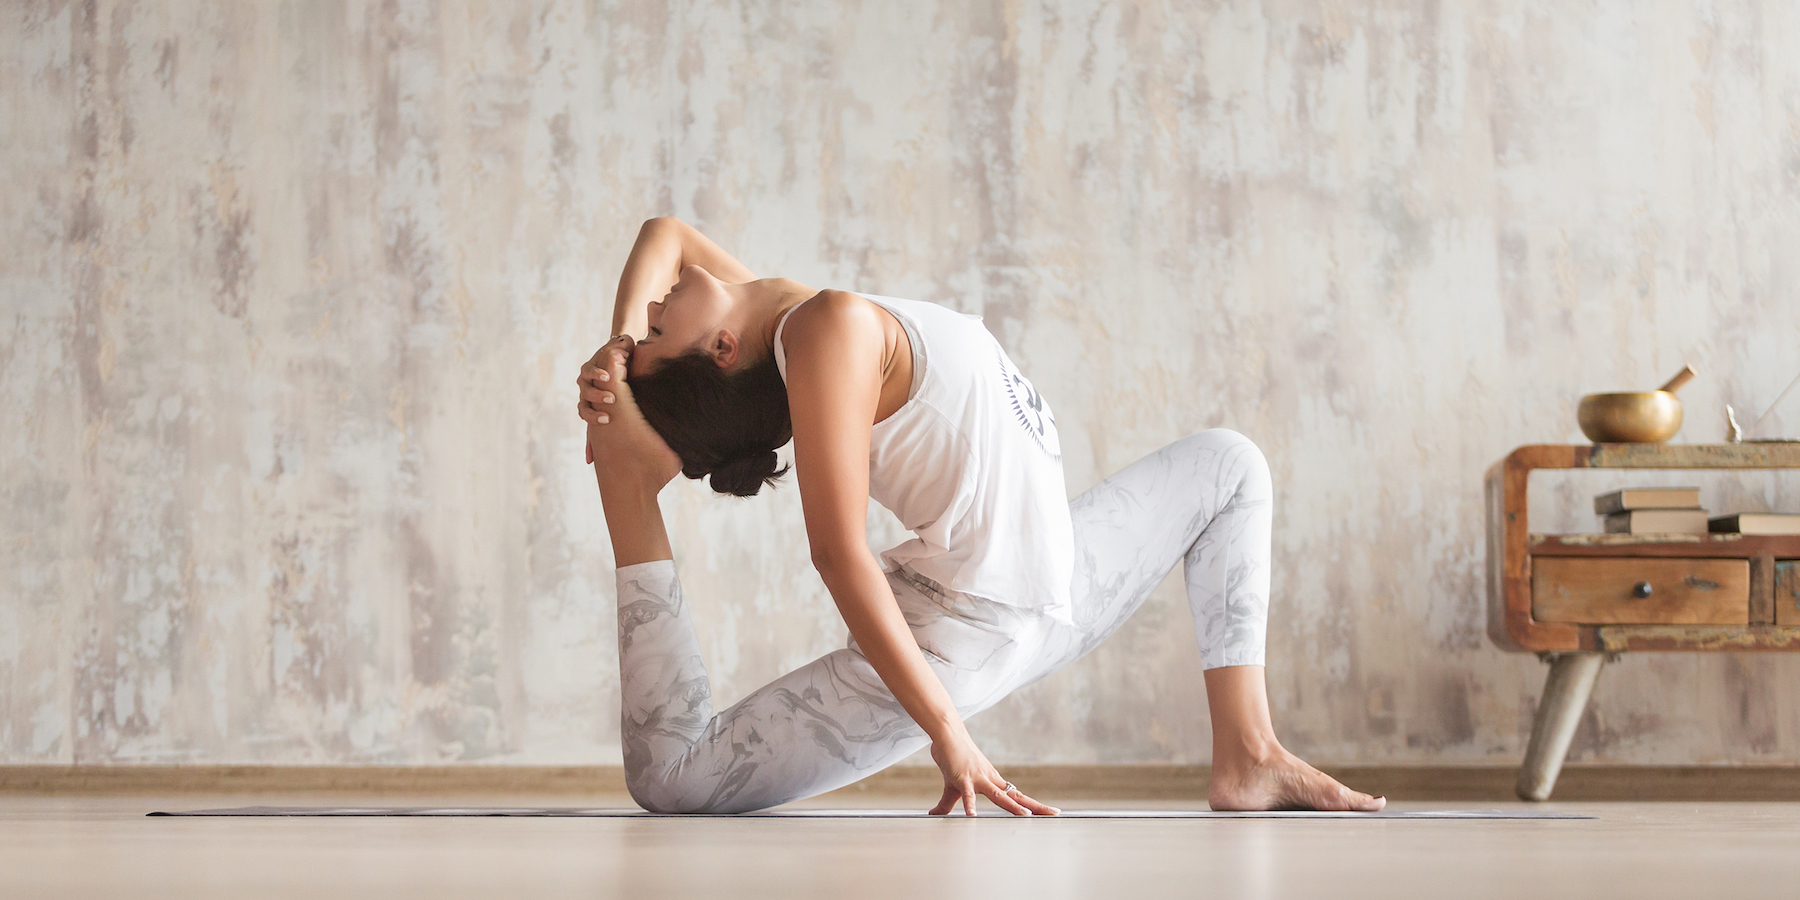 4 Simple Ways To Amp Up Your Yoga Practice